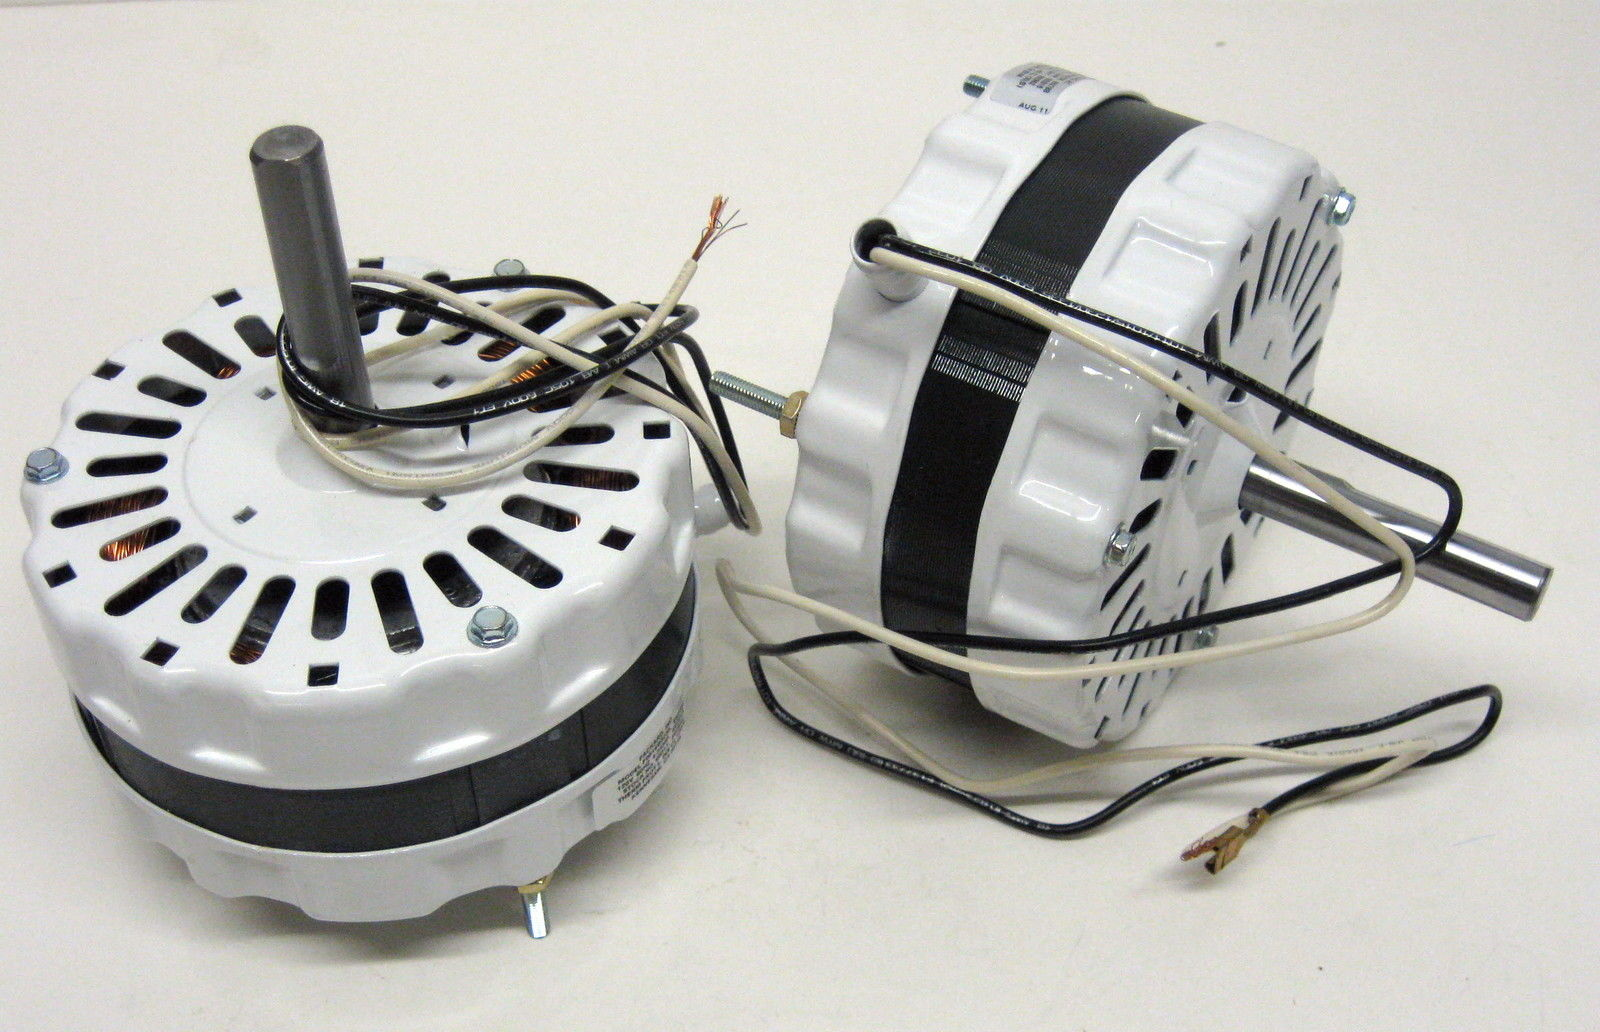 69317 2 Motor Attic Fan Ventilator For Broan Lomanco